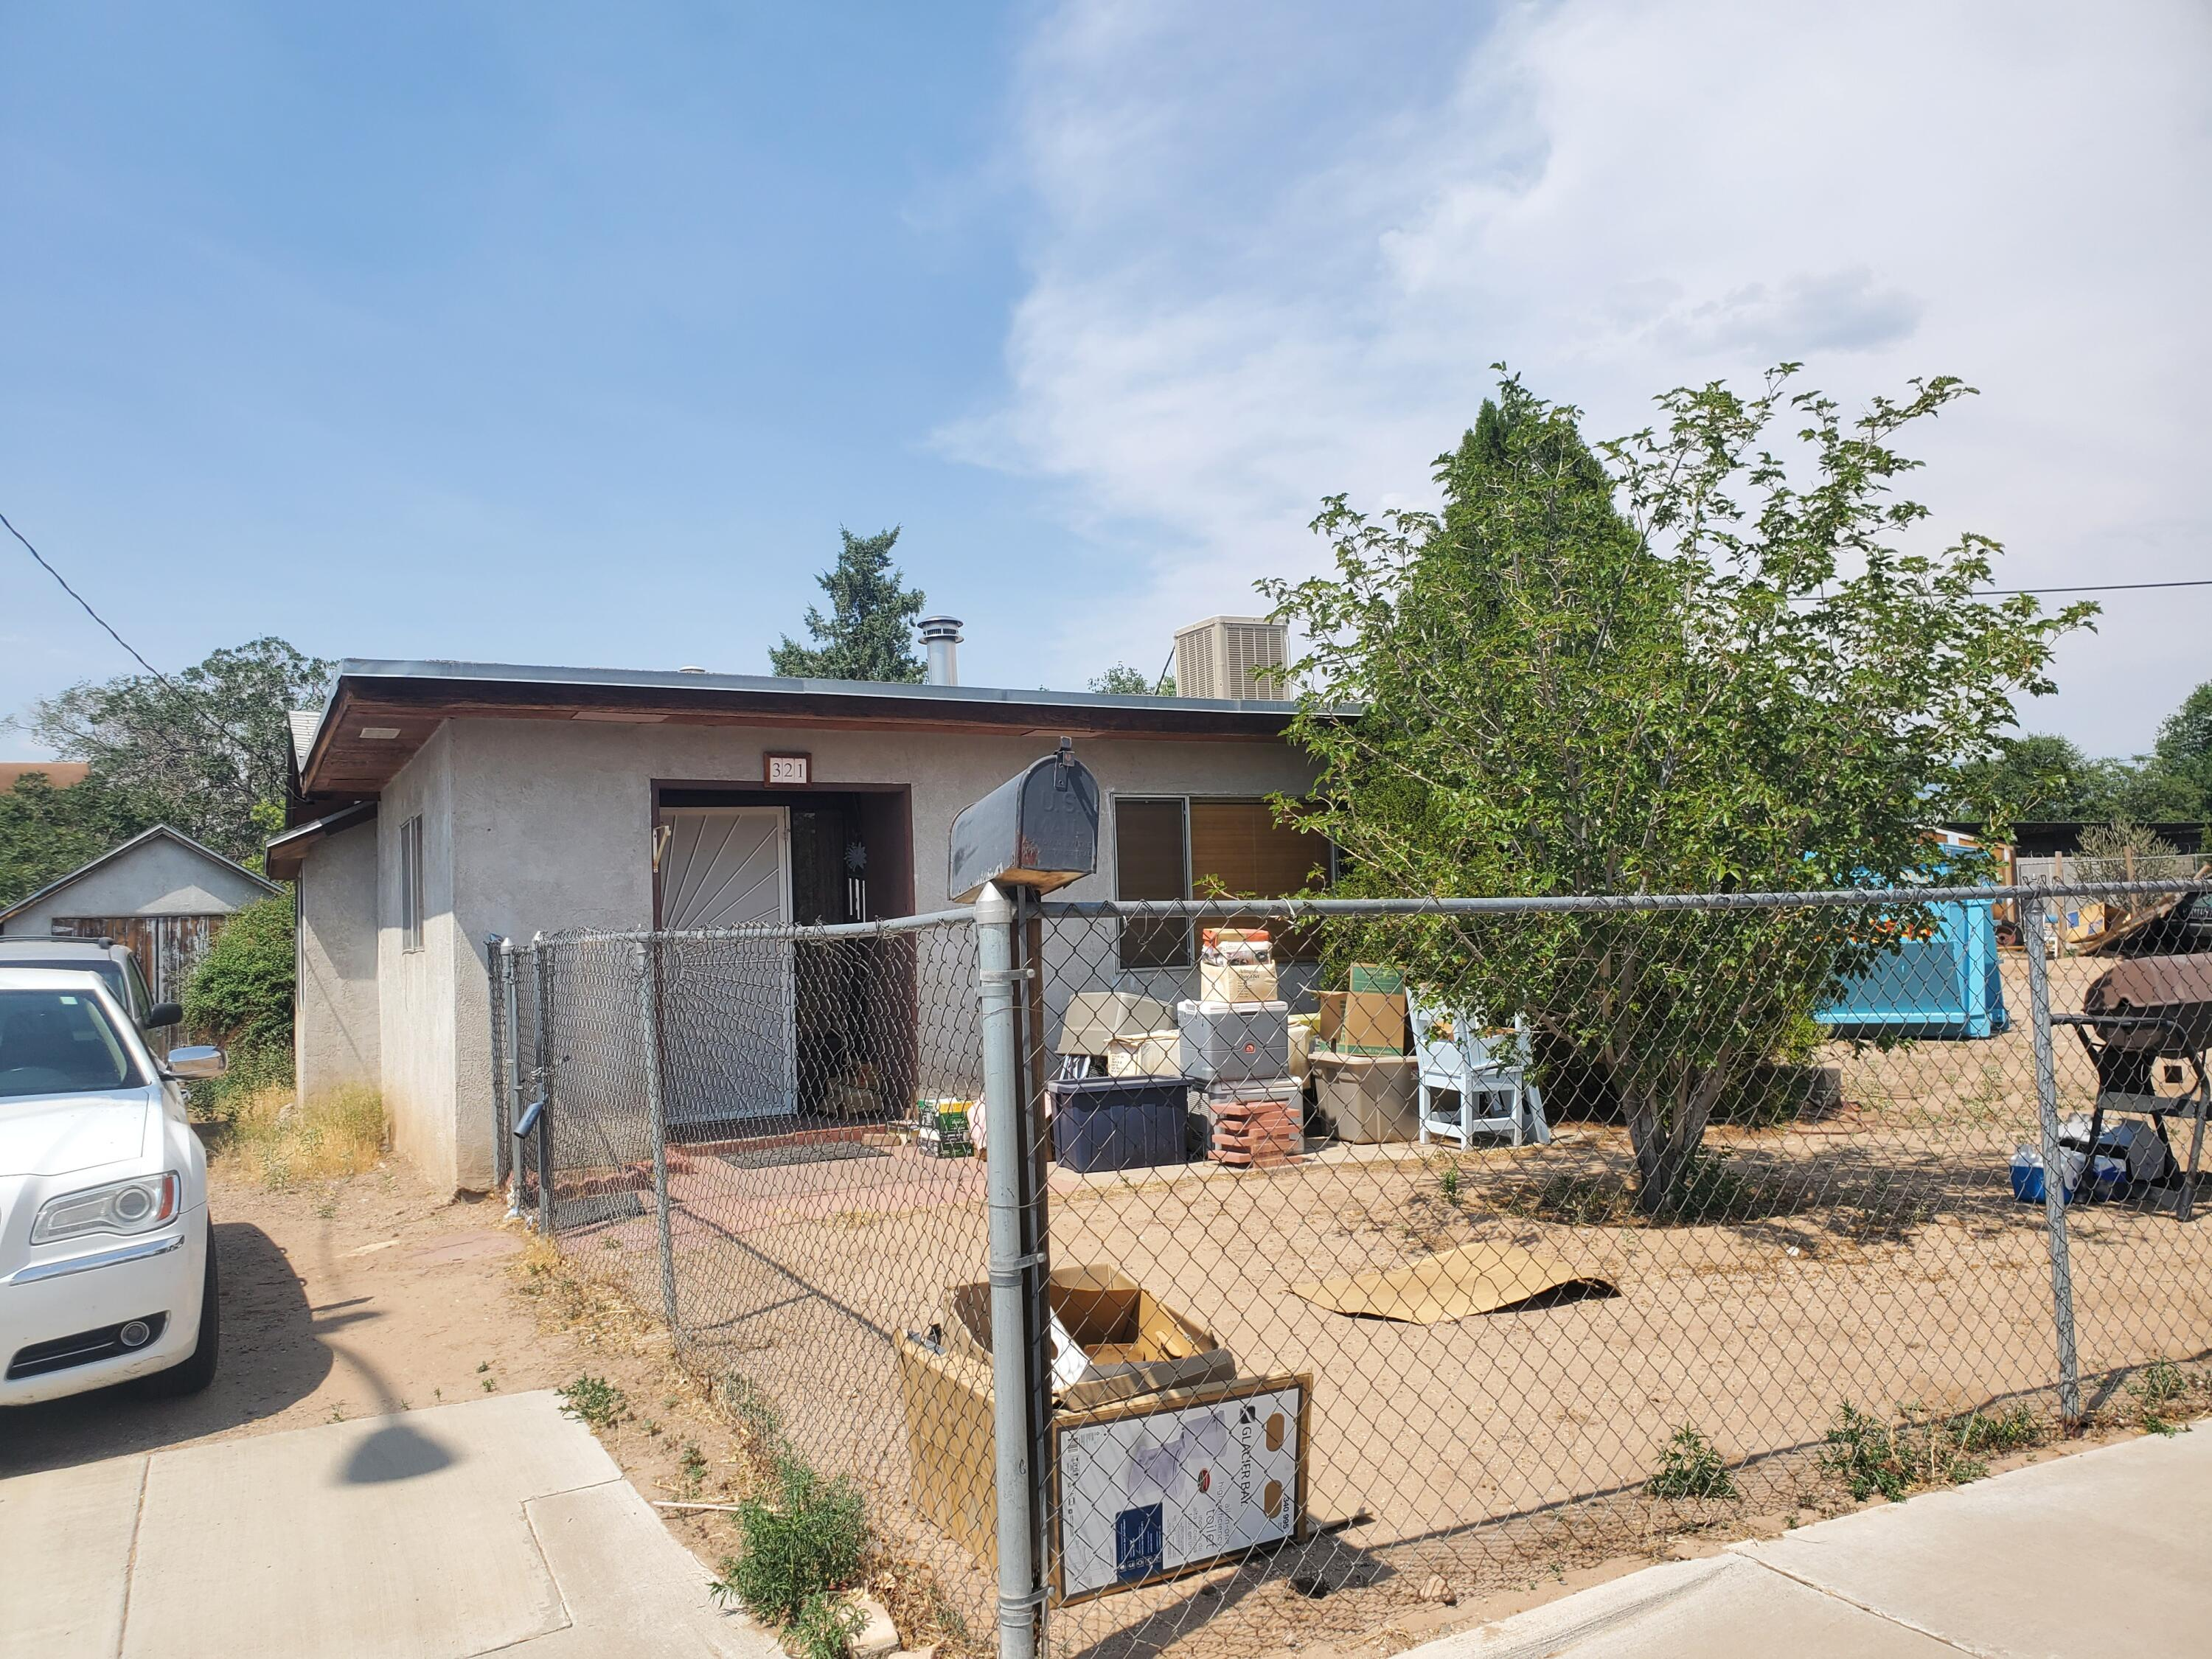 Come refurbish this home or start from scratch and build your dream home on this HUGE lot!!! Sold As-Is, all information to be verified by buyer.